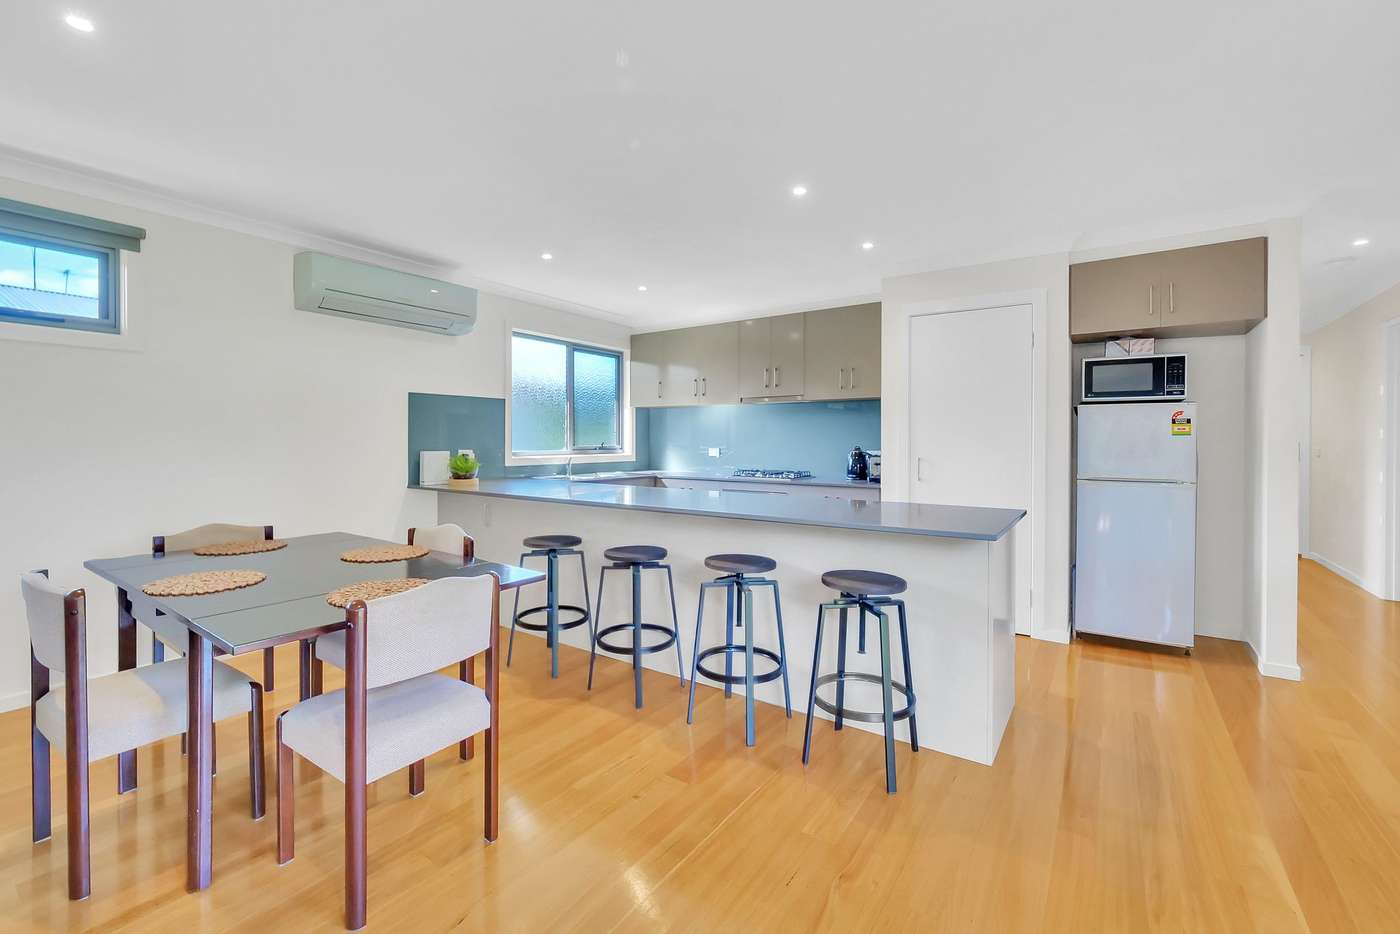 Seventh view of Homely house listing, 32 Dolphin Drive, Smiths Beach VIC 3922